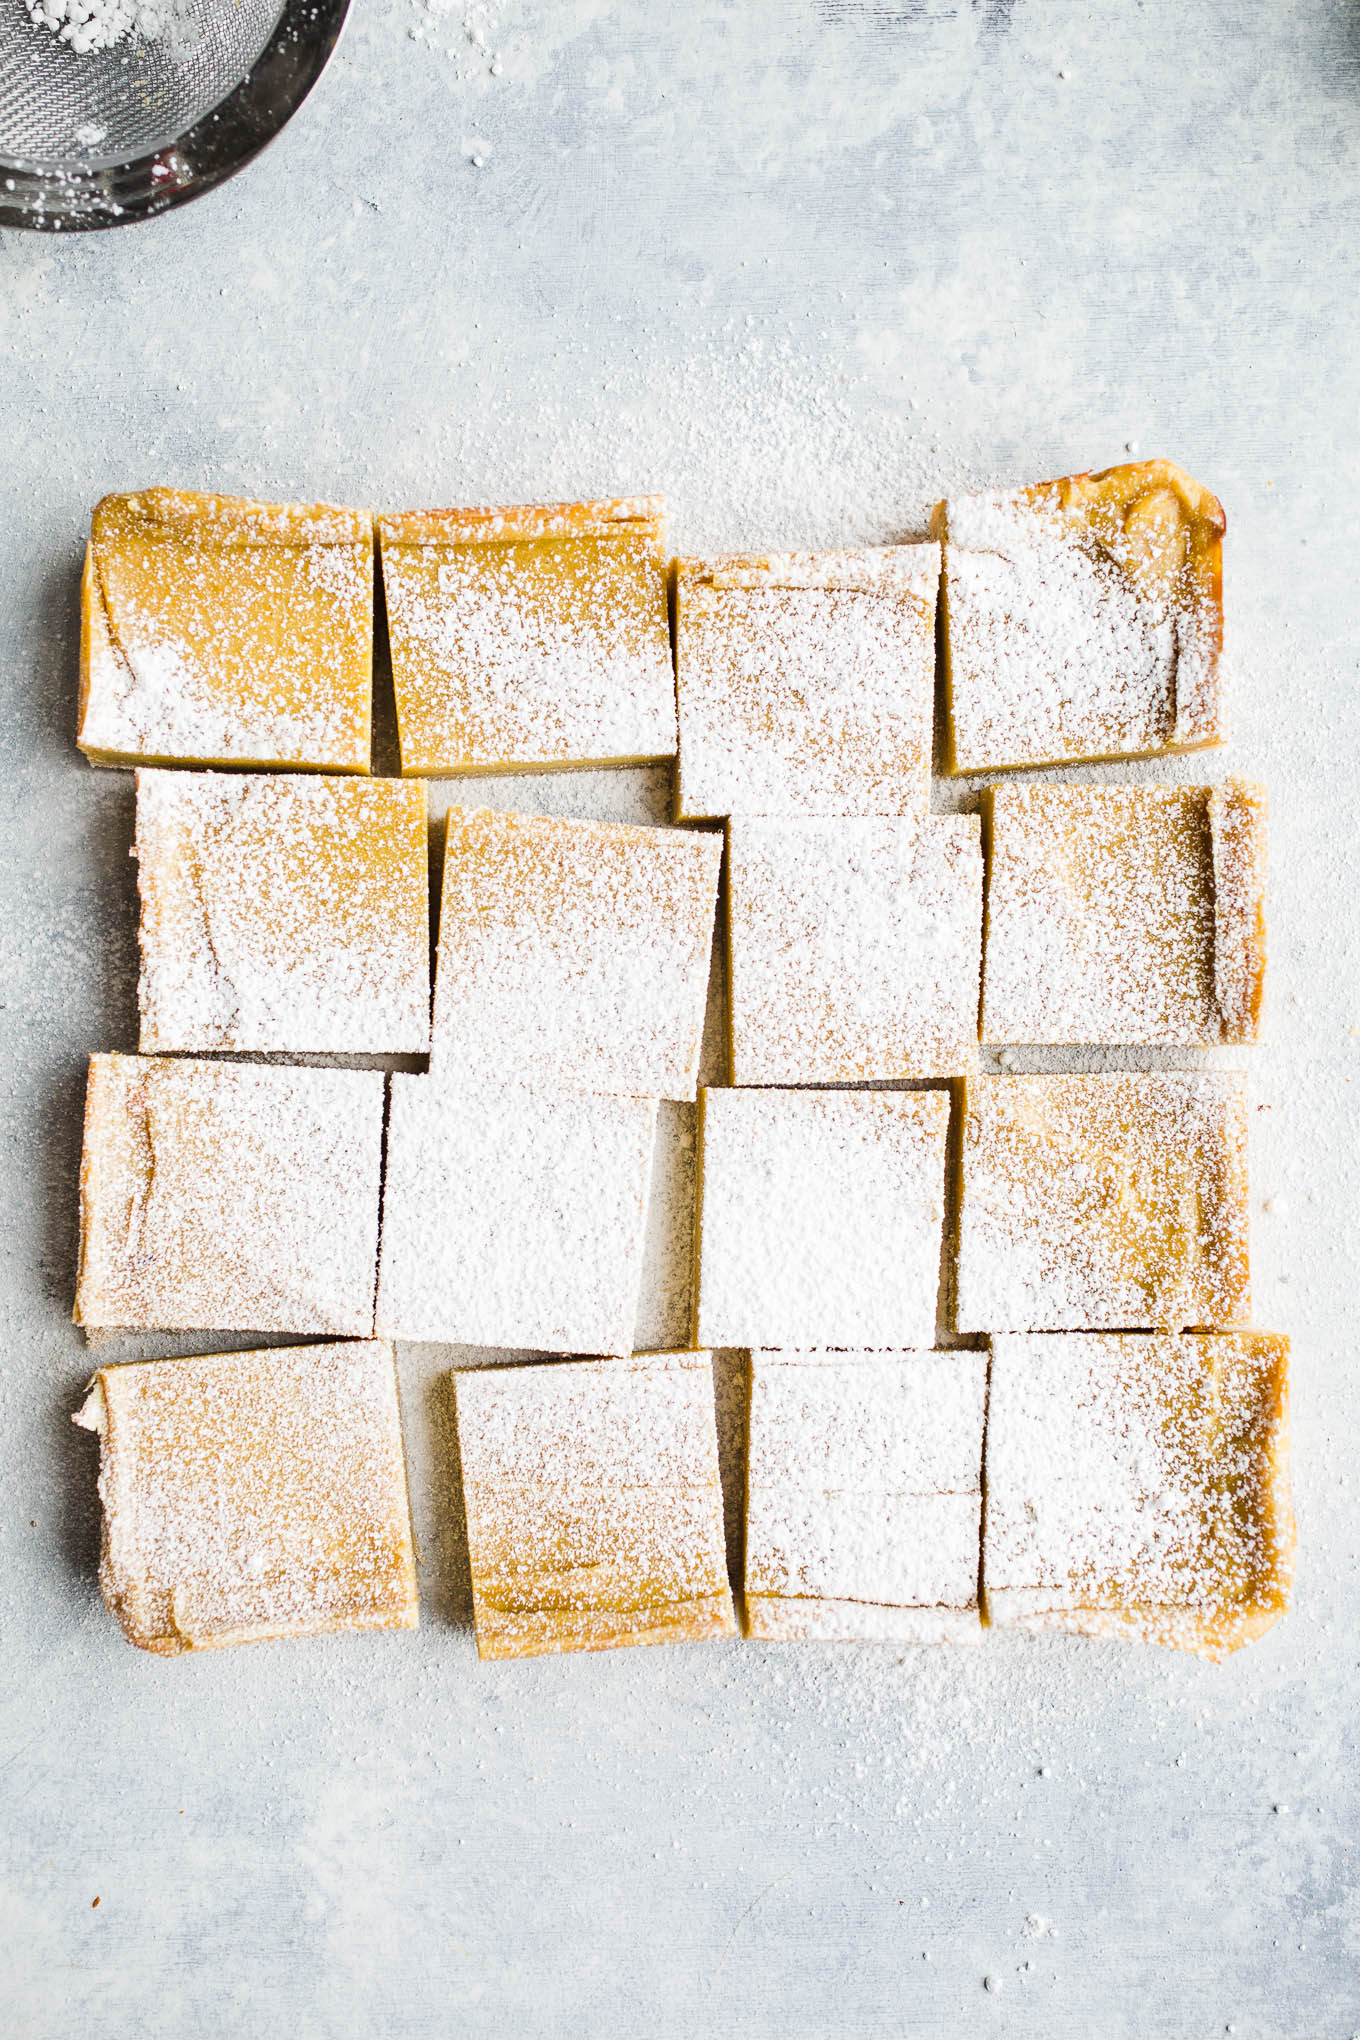 Vegan Gluten-Free Lemon Bars